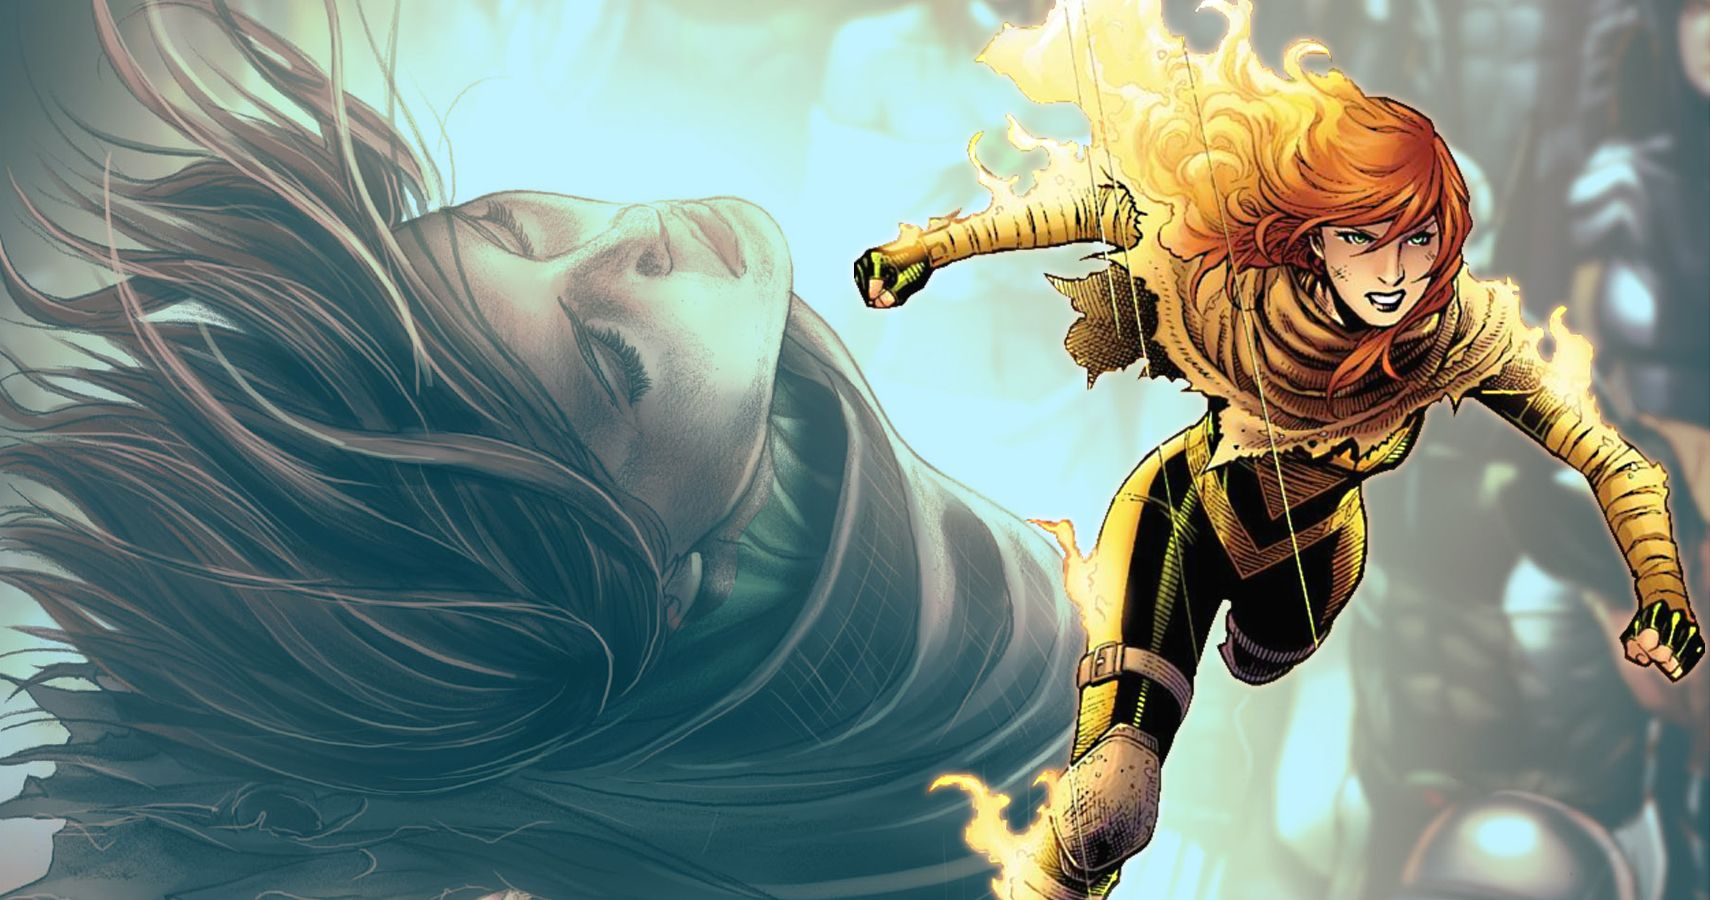 Hope Summers, one of the strongest members of the X-Force team.